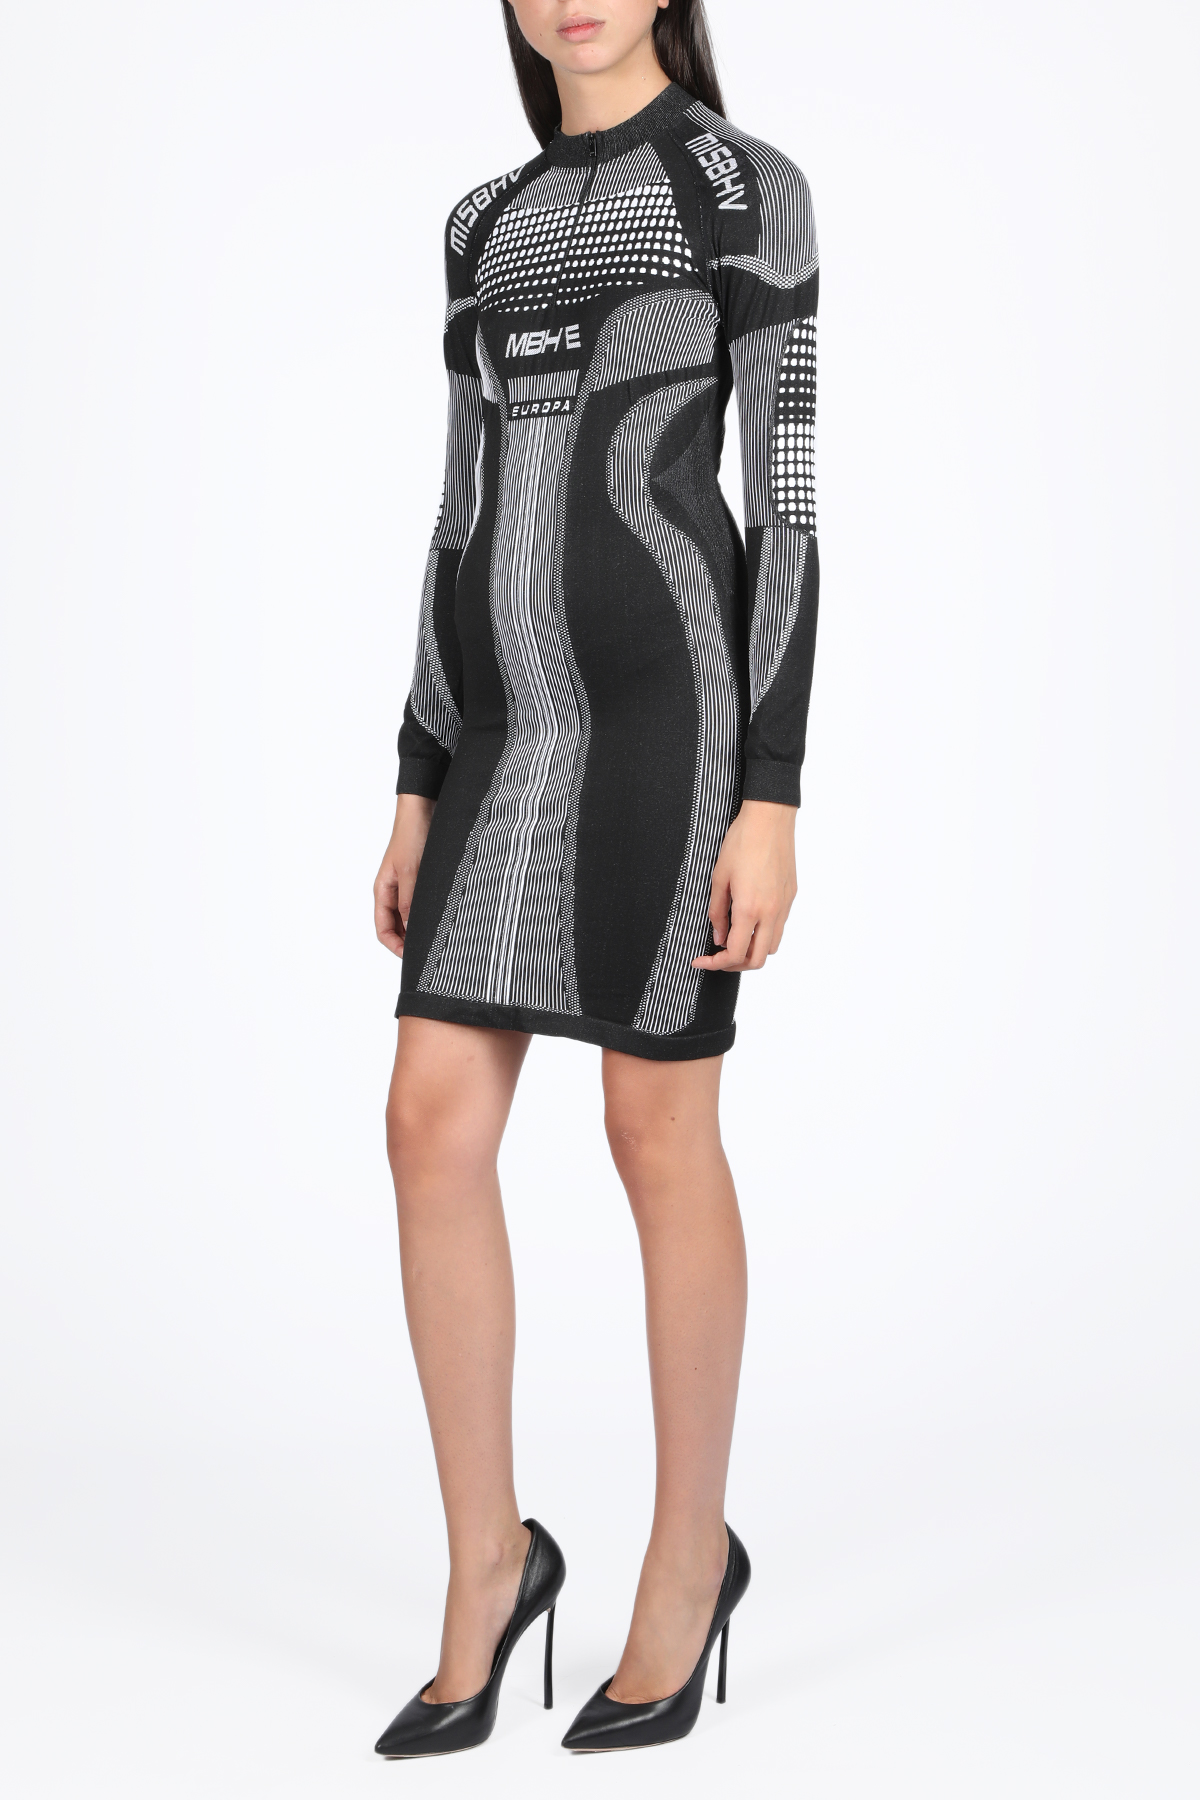 ACTIVE FUTURE DRESS MISBHV | 11 | 119W121 ACTIVE FUTURE DRESSBLACK/WHITE